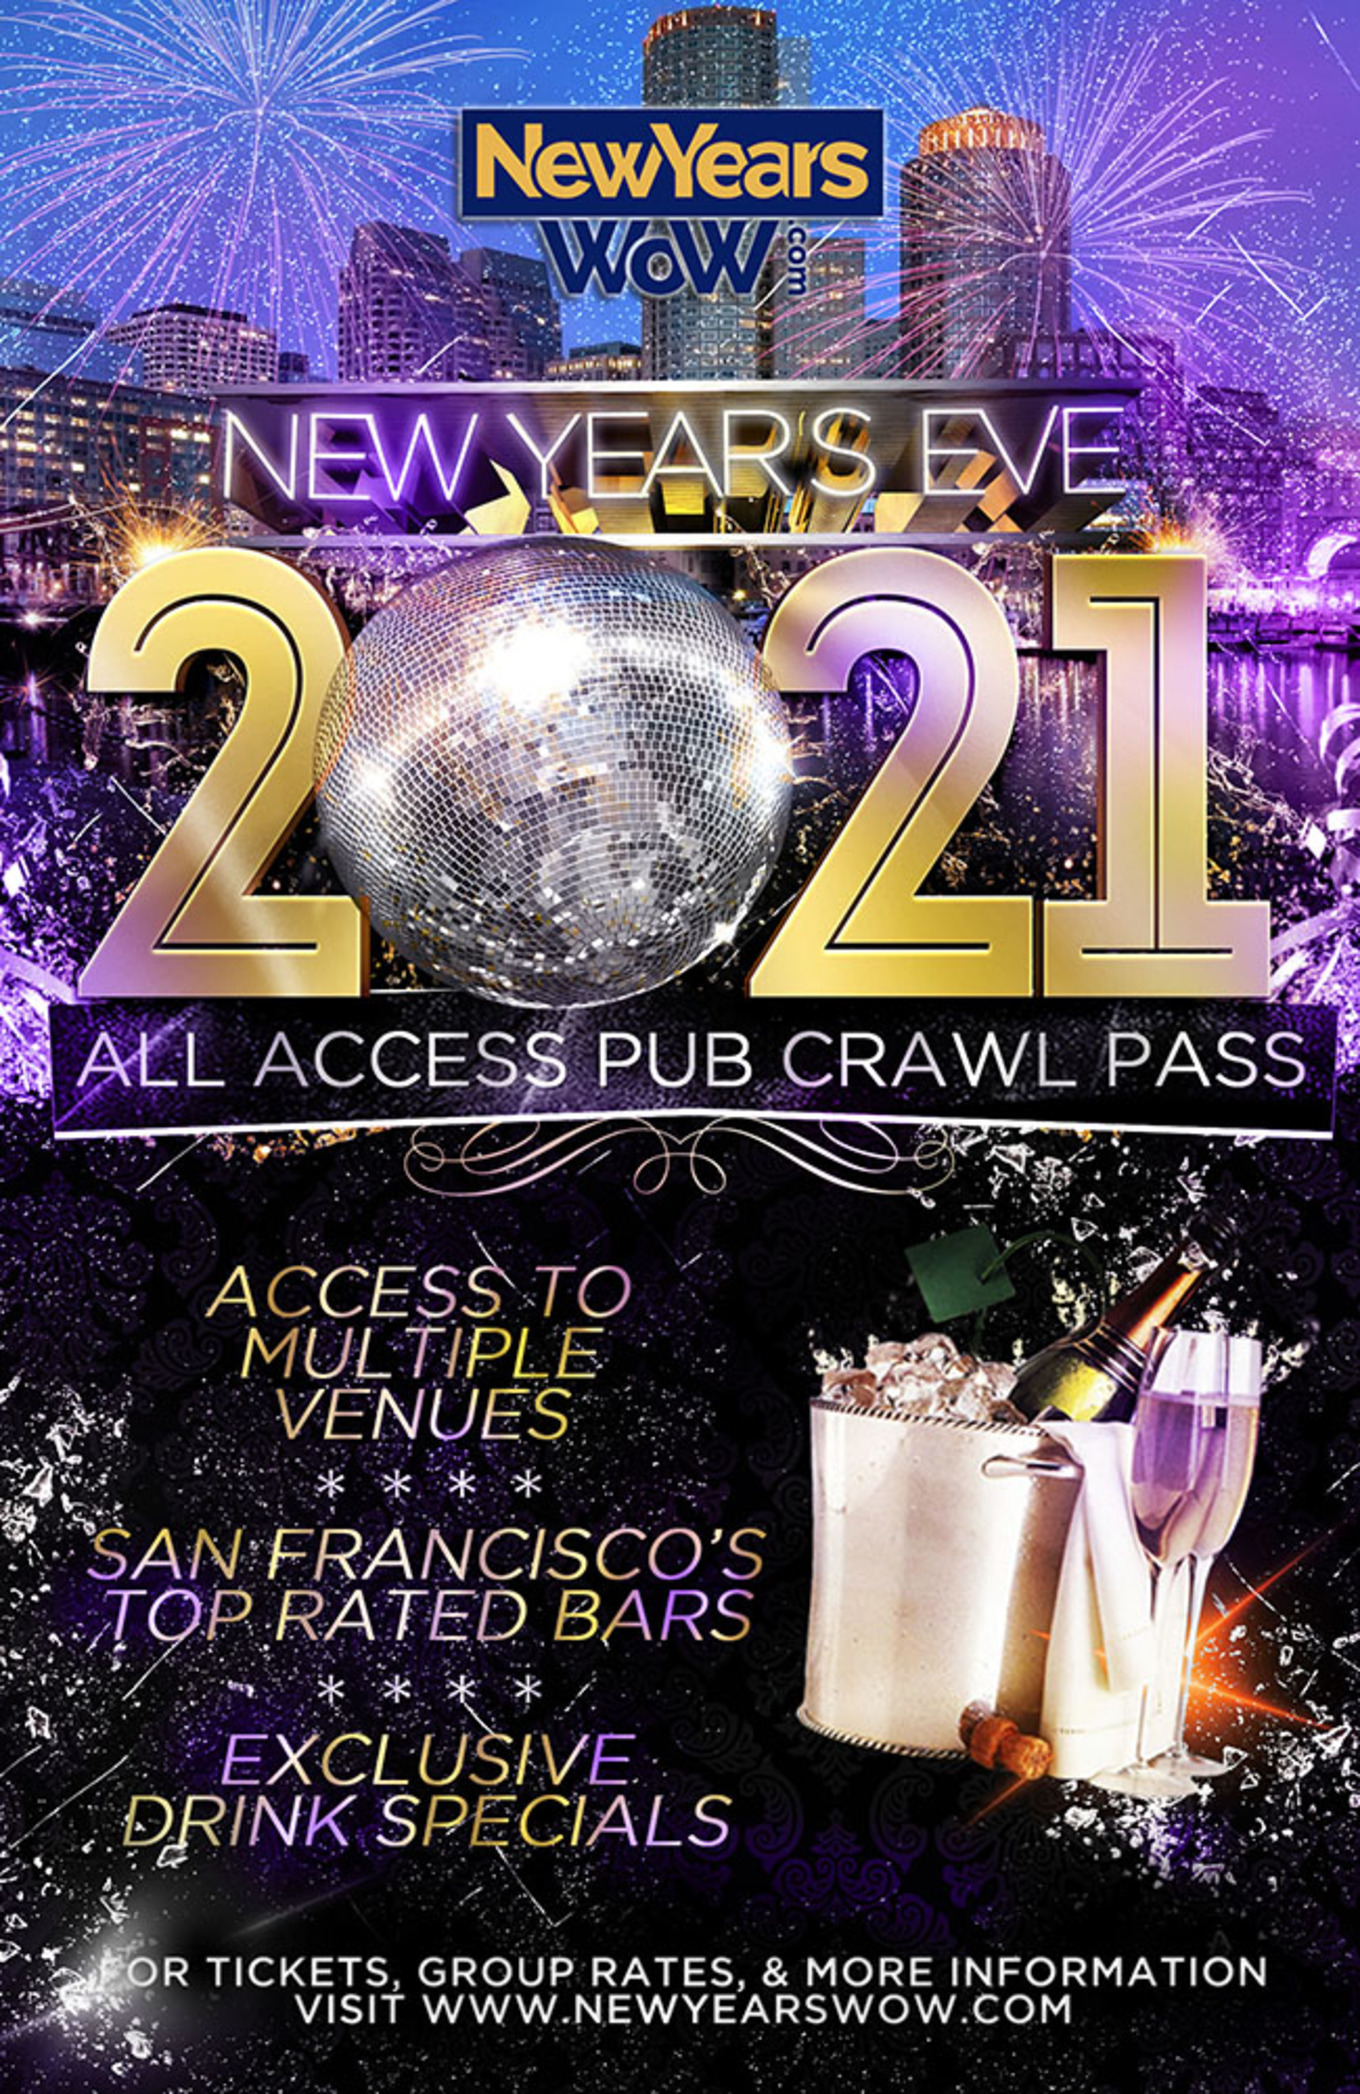 Ey San Francisco Christmas Party 2021 San Francisco All Access Nye Party Pass 2021 Tickets The Blue Light Various Venues San Francisco Ca December 31 2020